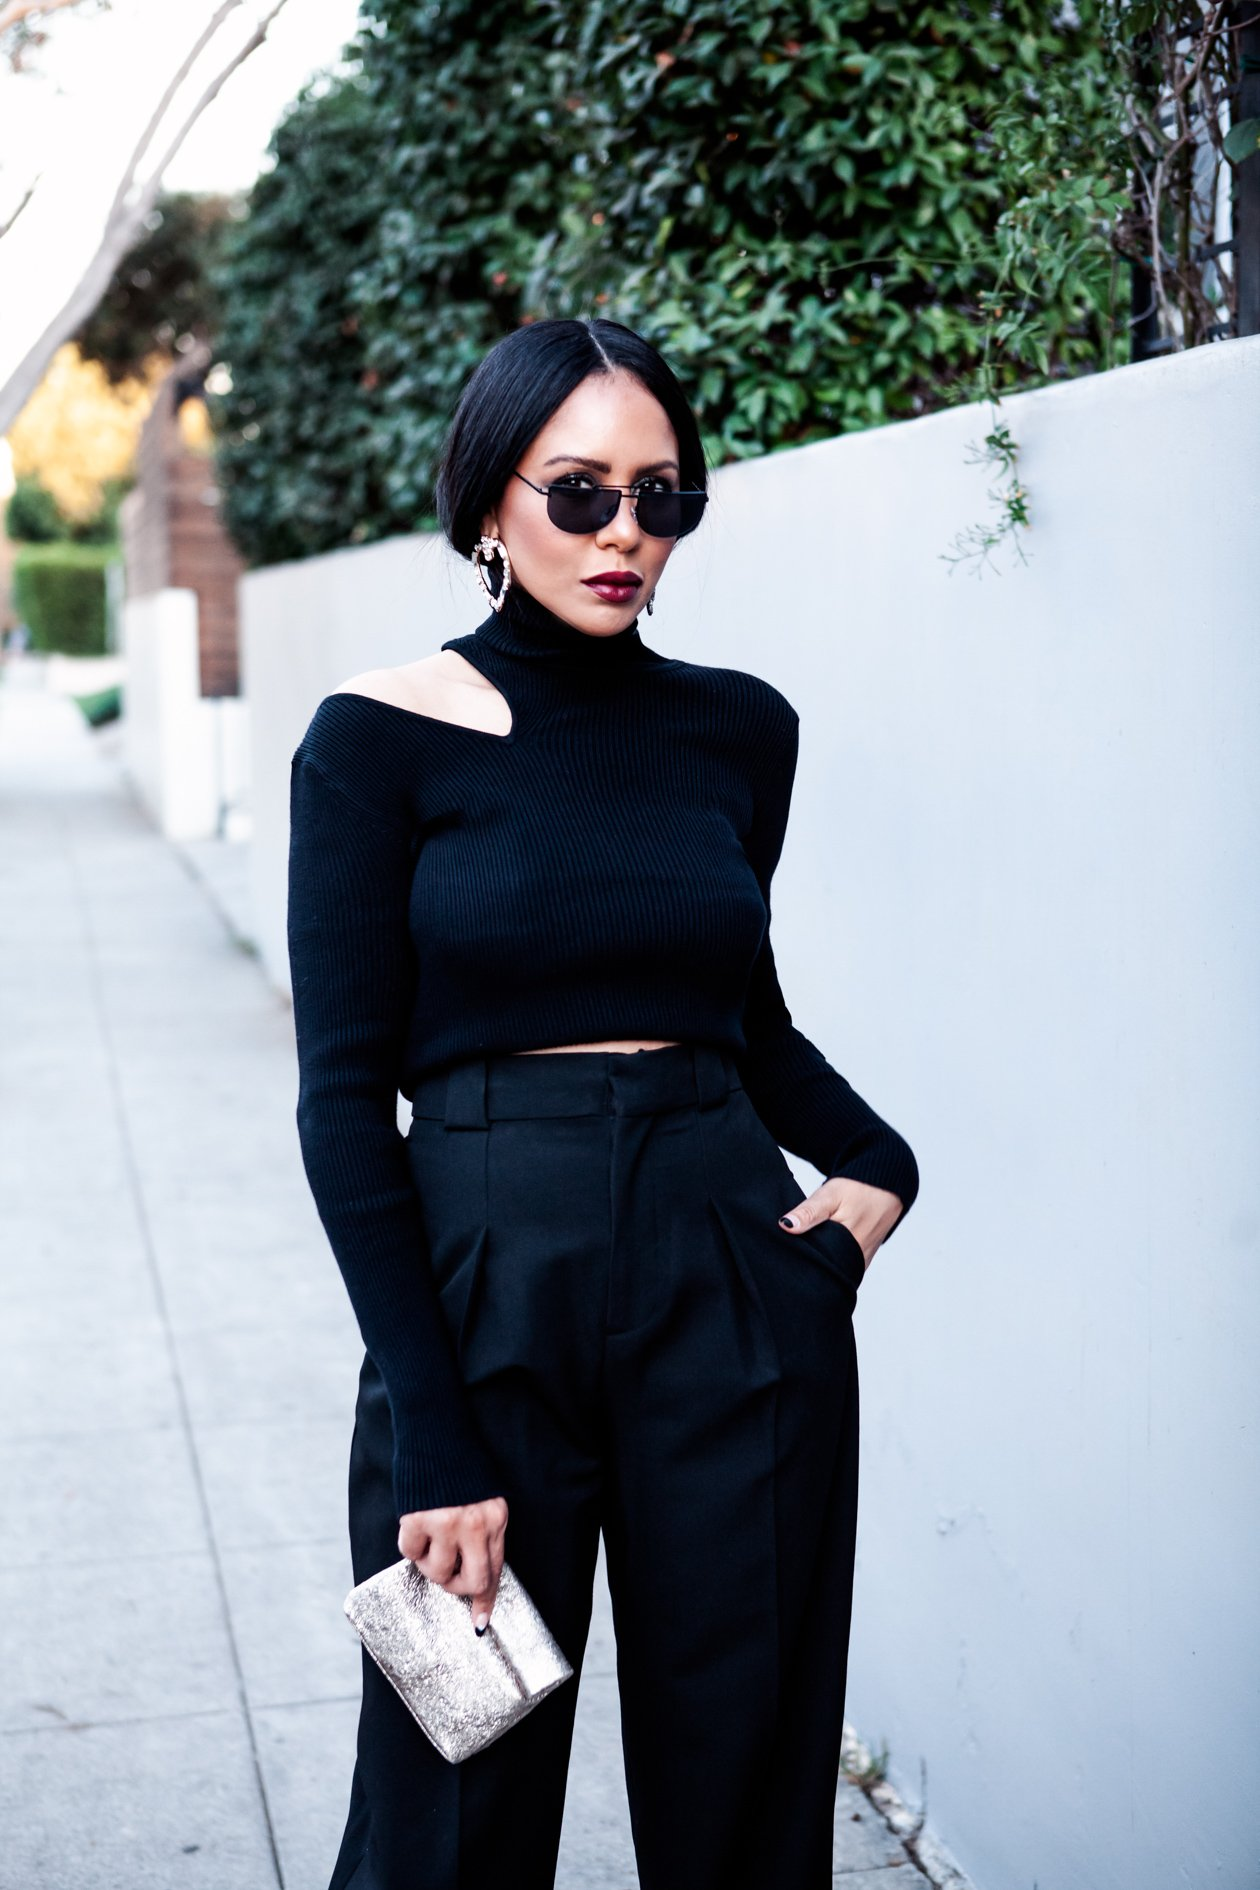 Black turtleneck and trousers with white boots